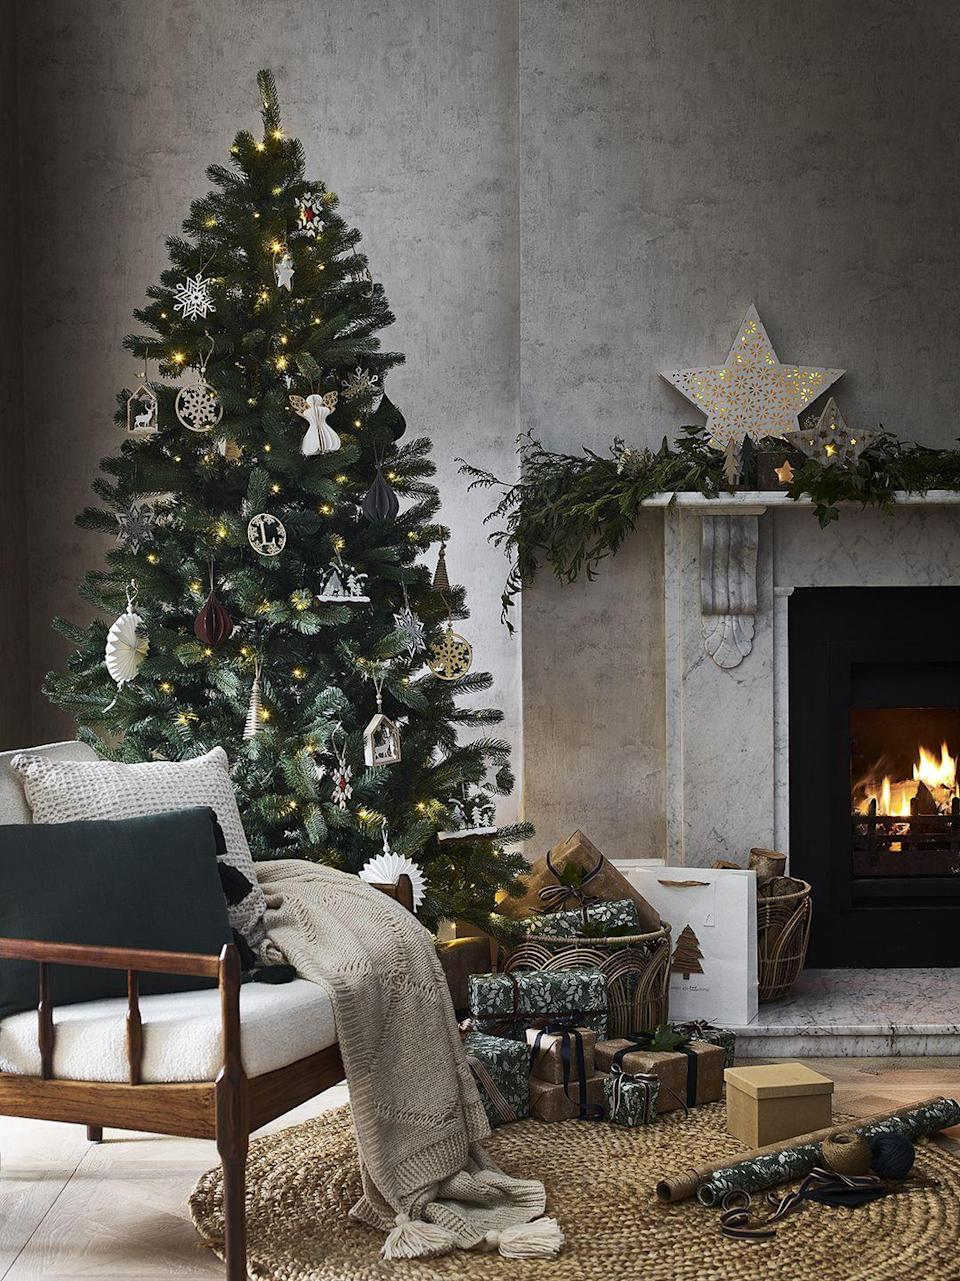 """<p>From dressing the <a href=""""https://www.housebeautiful.com/uk/garden/plants/g33917767/letterbox-christmas-tree/"""" rel=""""nofollow noopener"""" target=""""_blank"""" data-ylk=""""slk:tree"""" class=""""link rapid-noclick-resp"""">tree</a> to jazzing up the fireplace, there are heaps of ways to up the level of cosy in your home at Christmas. As part of George Home's 'Kindred' trend, discover stylish cushions, star string lights and gorgeous baubles. With the nights drawing in, we couldn't think of anything better than curling up in the <a href=""""https://www.housebeautiful.com/uk/decorate/living-room/g30980928/small-living-room-ideas/"""" rel=""""nofollow noopener"""" target=""""_blank"""" data-ylk=""""slk:living room"""" class=""""link rapid-noclick-resp"""">living room</a>...</p>"""